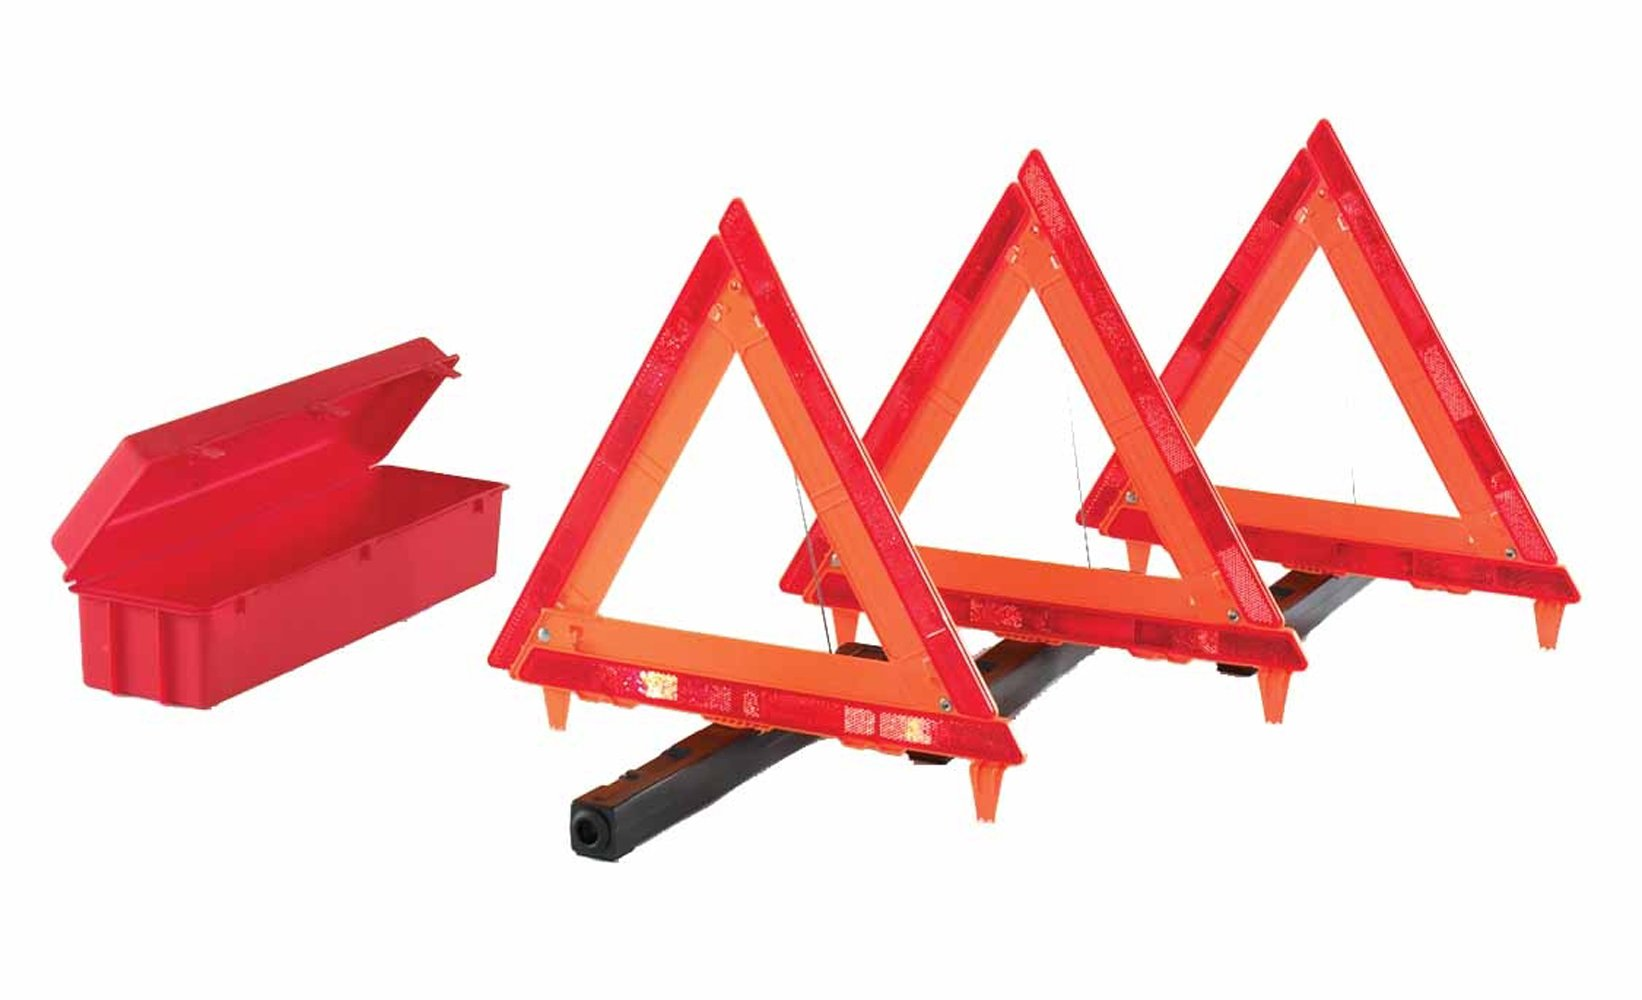 Cortina 95-03-009 3 Piece Triangle Warning Kit by Cortina